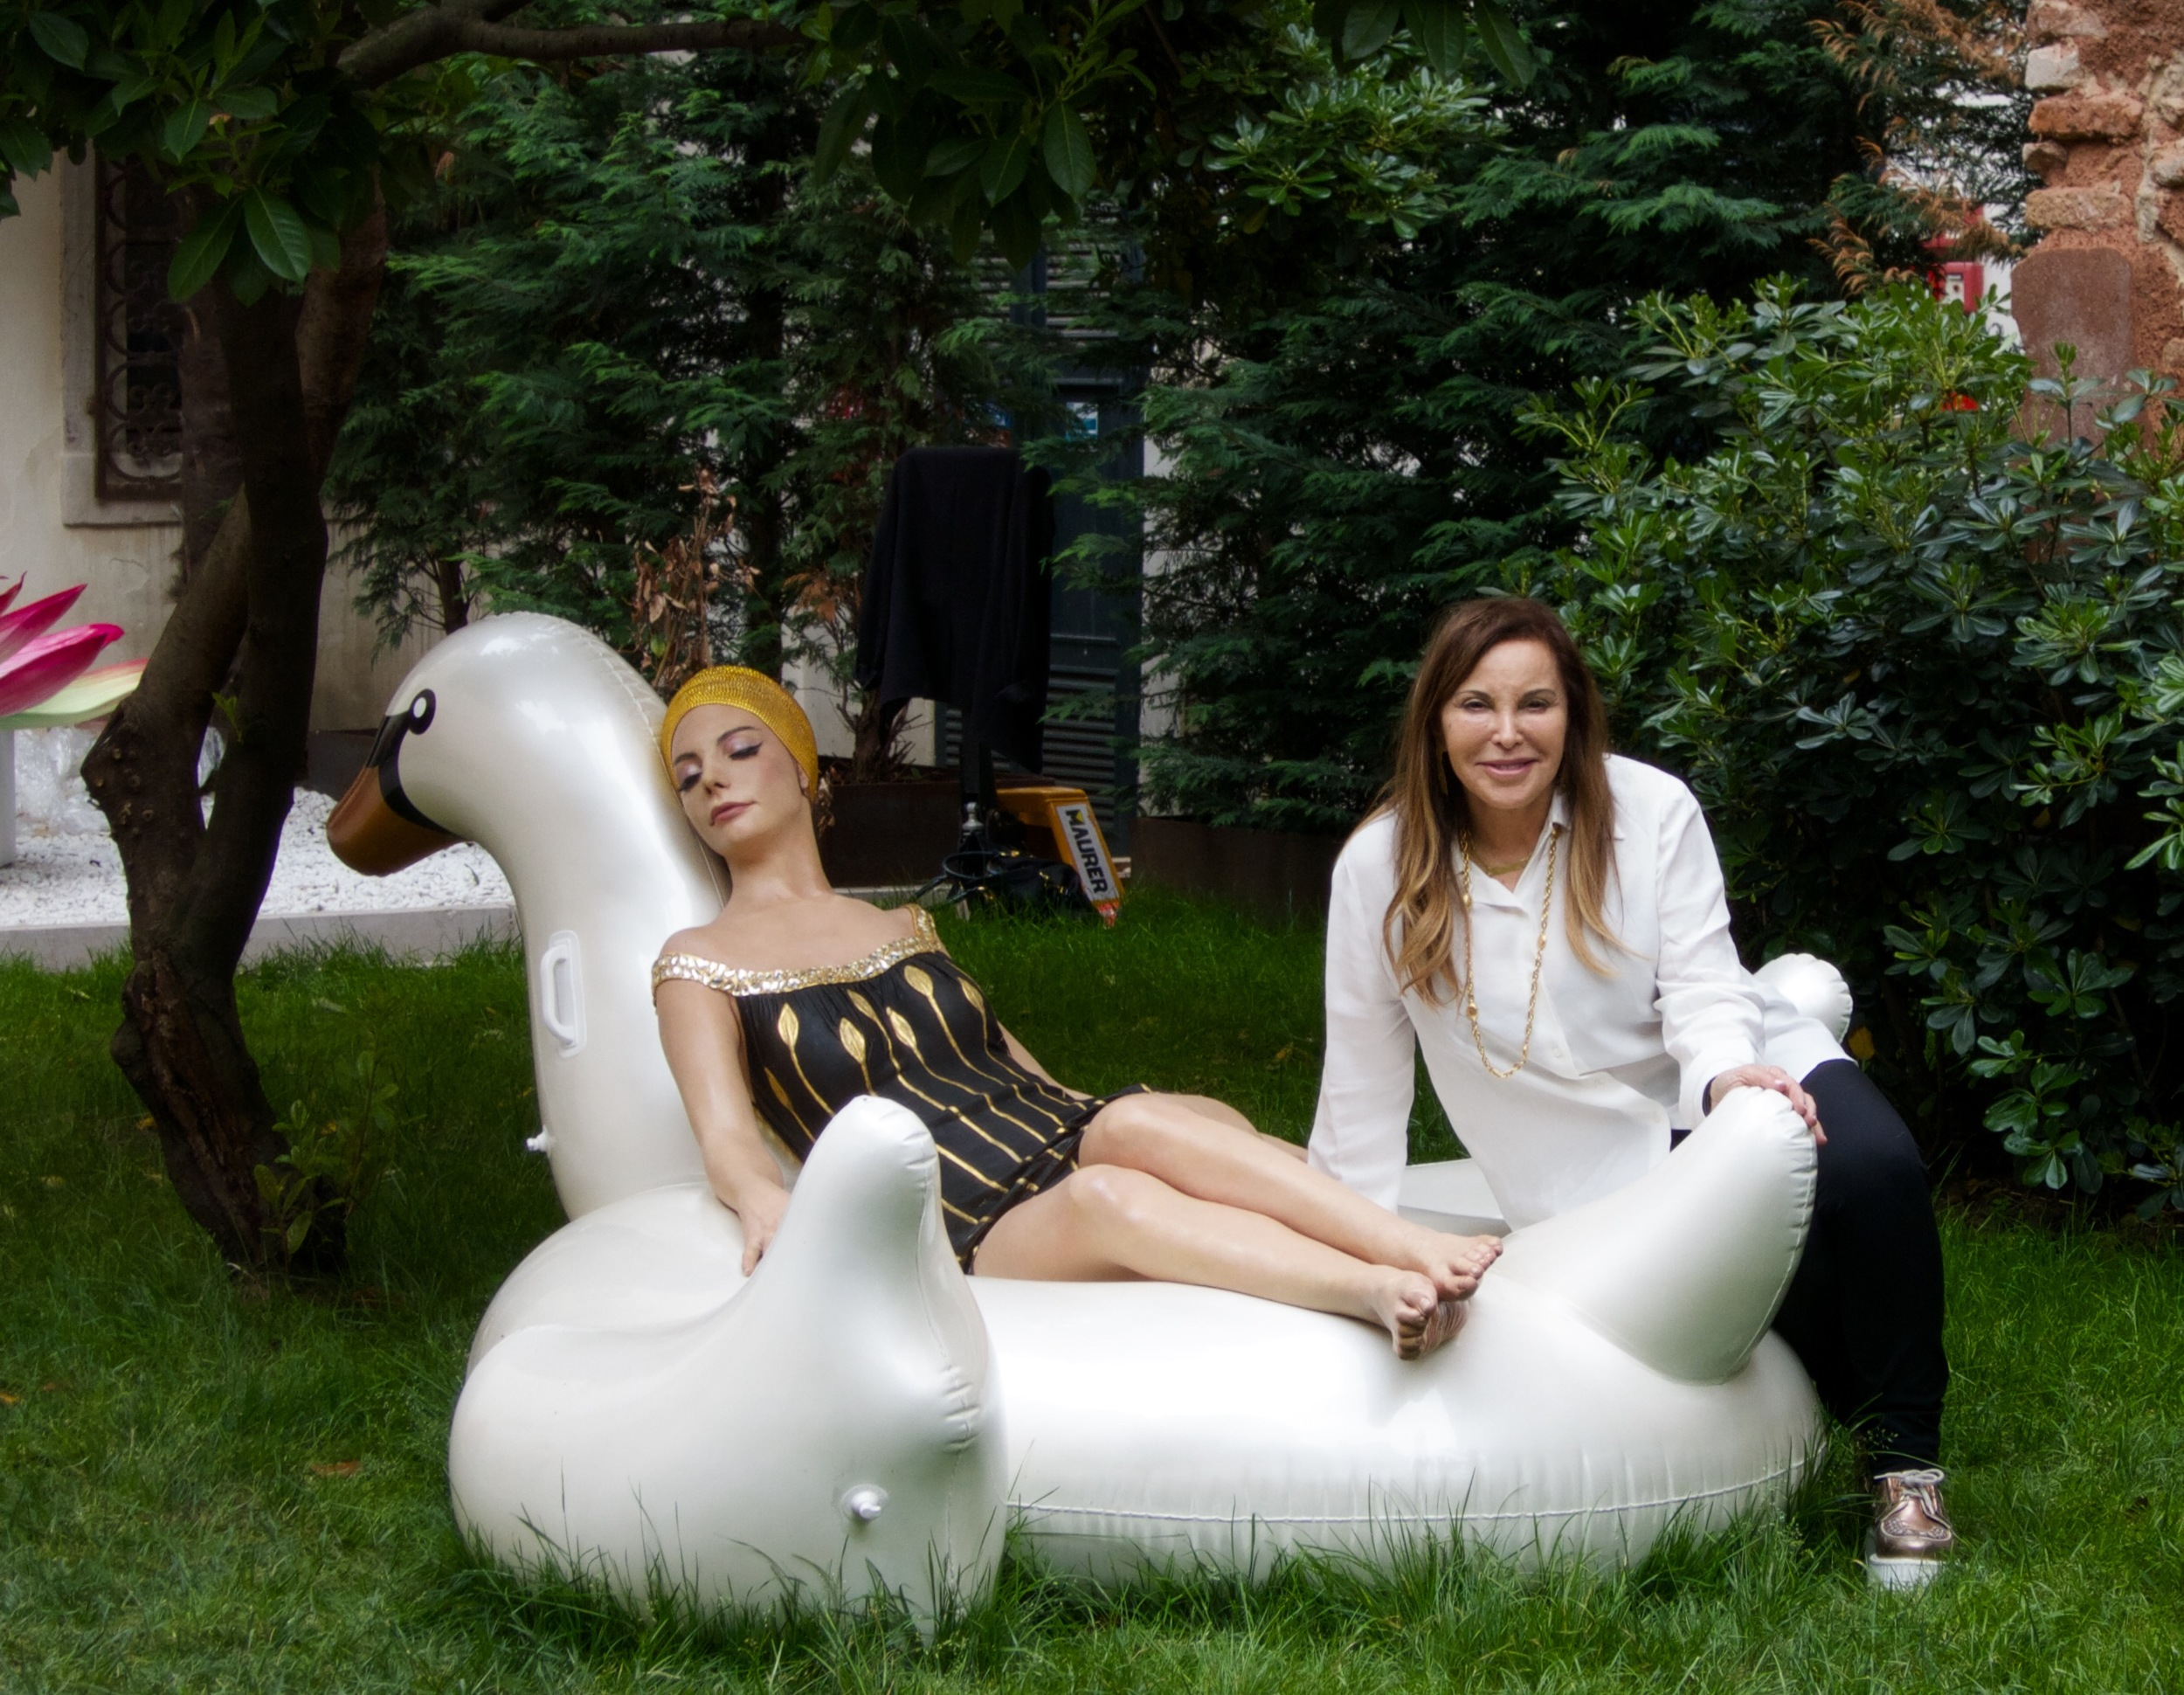 Leda and the Swan, 2015, Oil on Resin, on location at Palazzo Mora